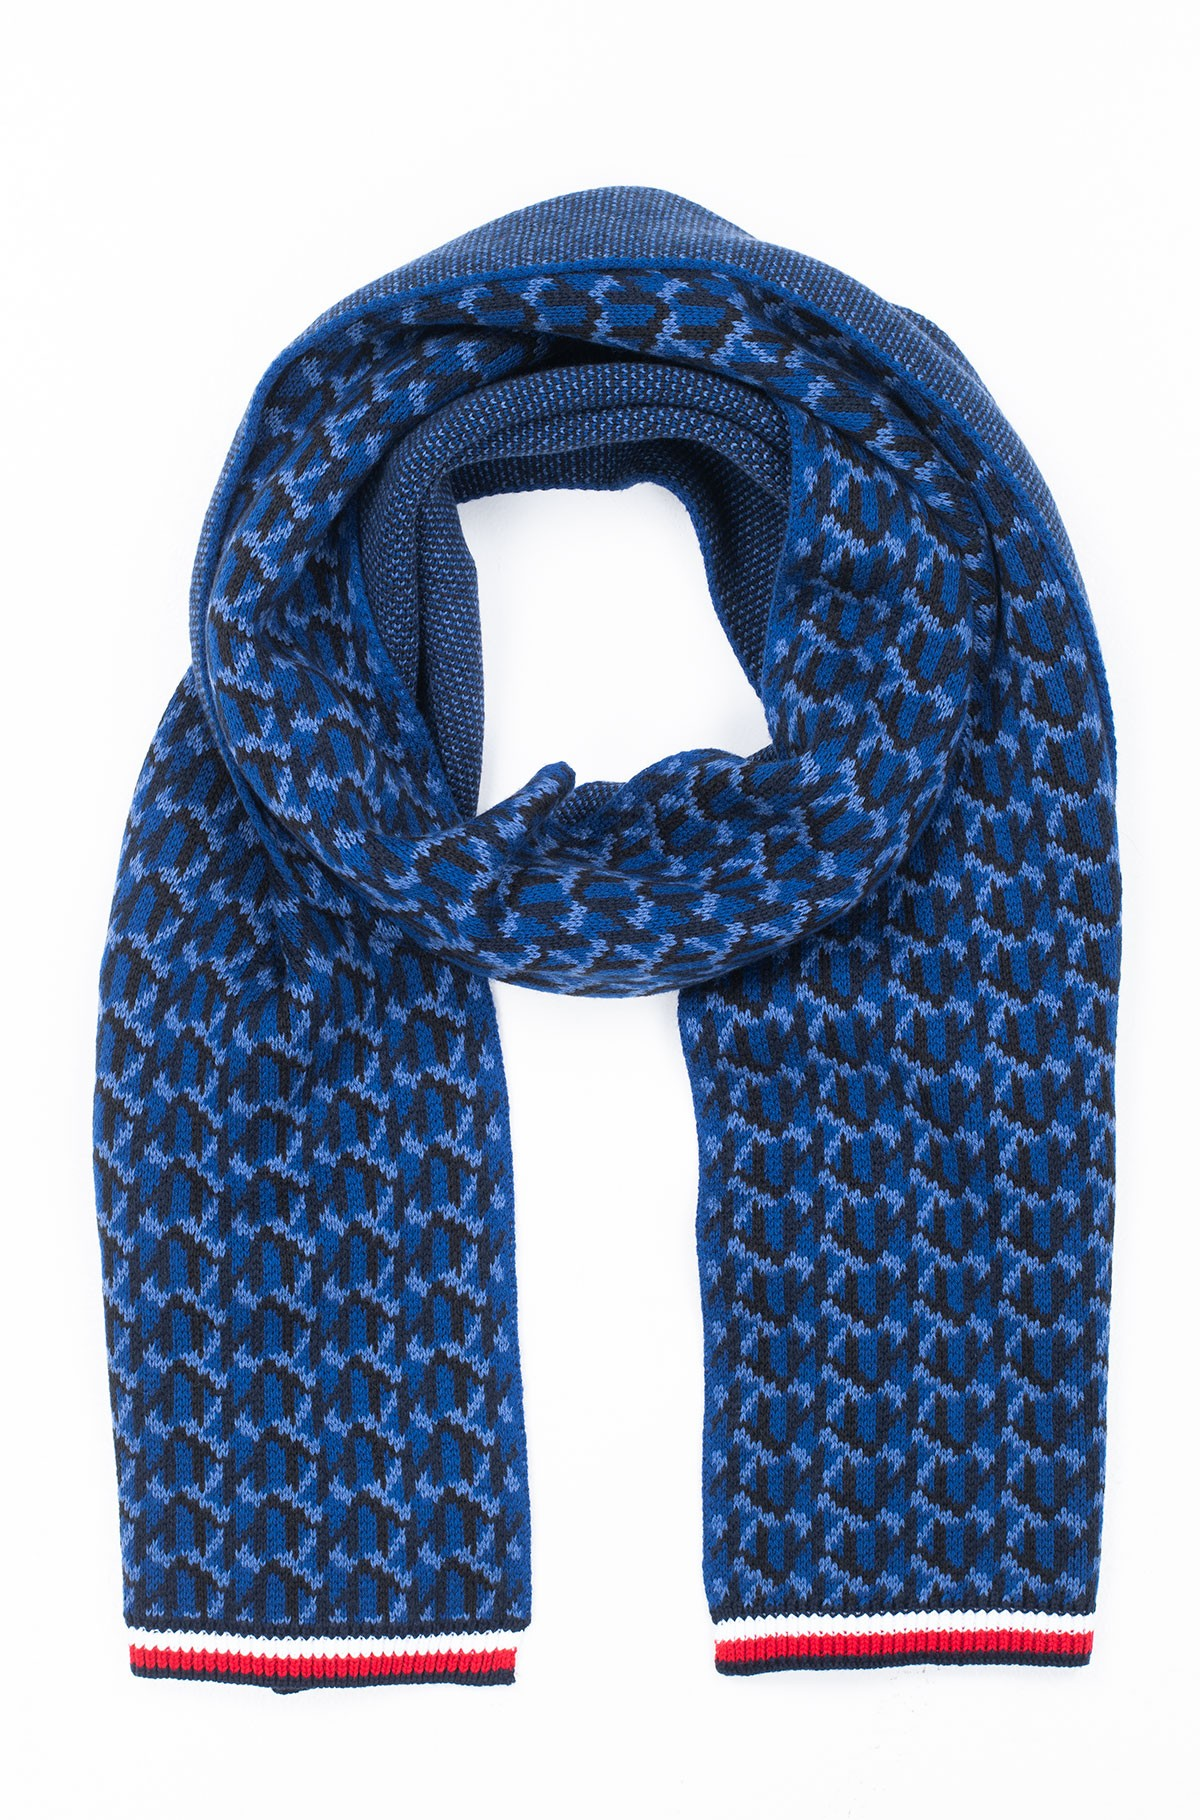 Šalikas TH MONOGRAM KNIT SCARF-full-1